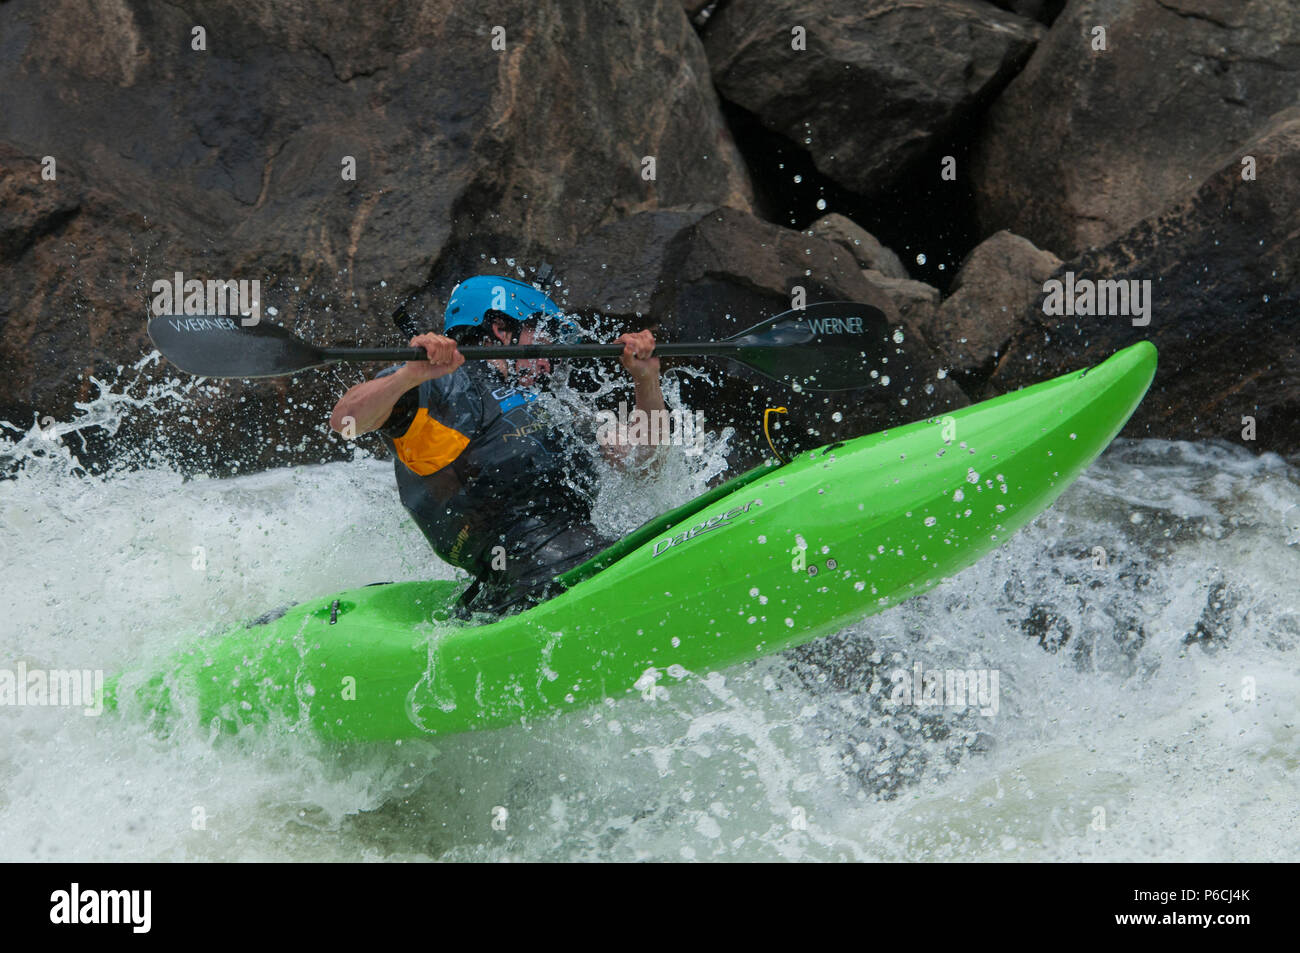 Kayaking on the North Fork Payette River in the 2018 North Fork Kayak Championship - Stock Image